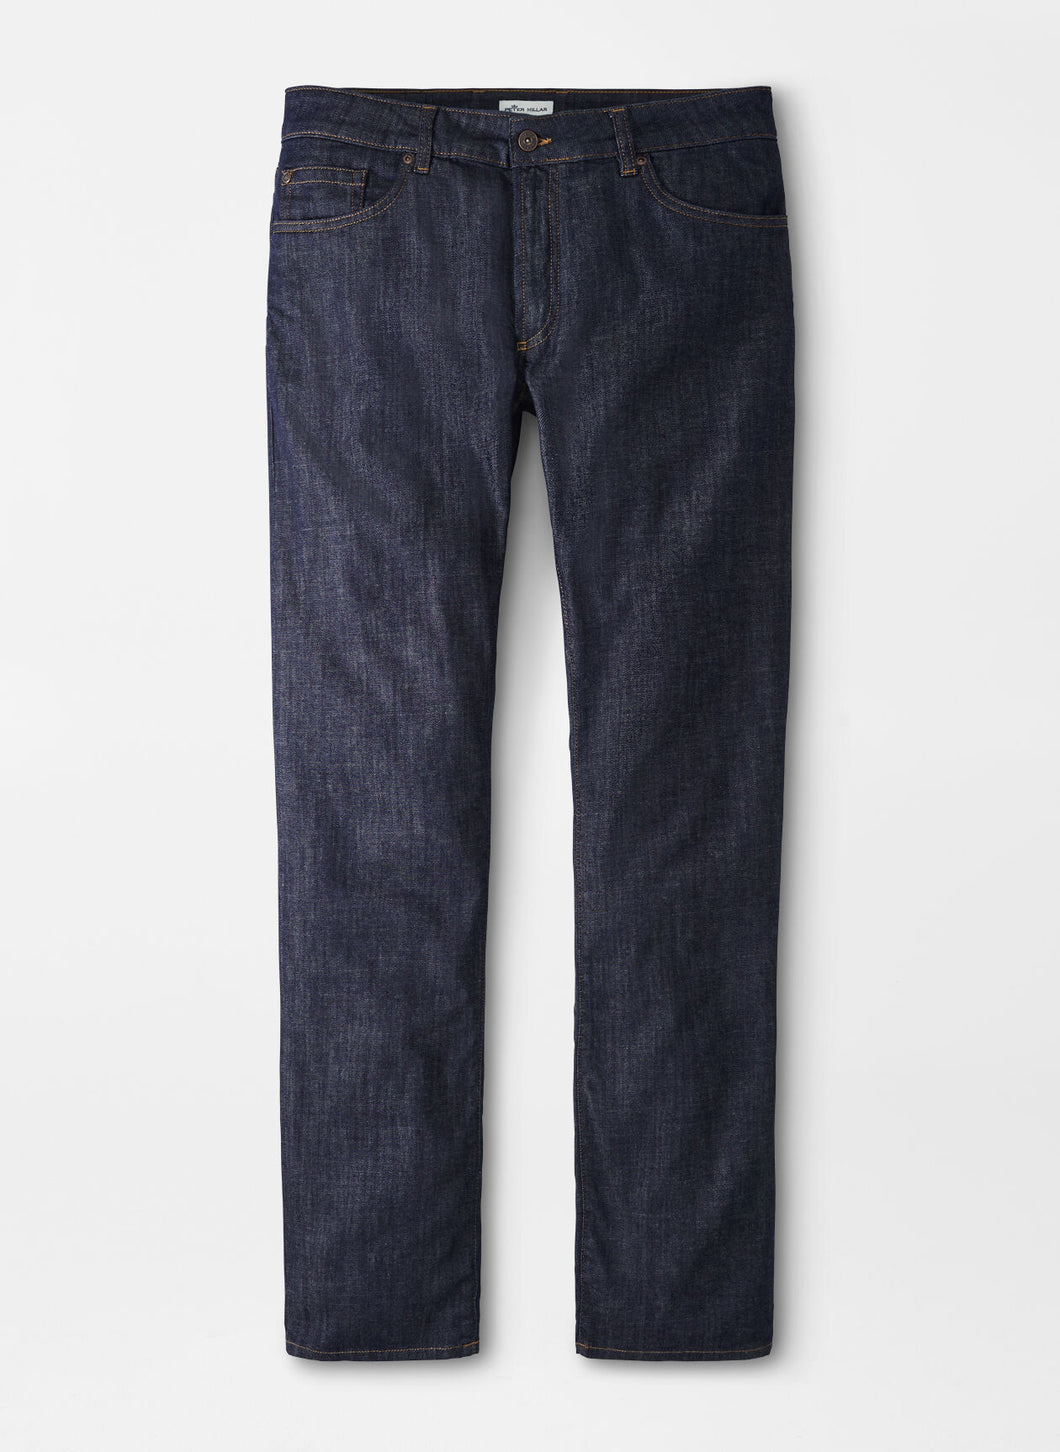 Peter Millar Pilot Mill Denim